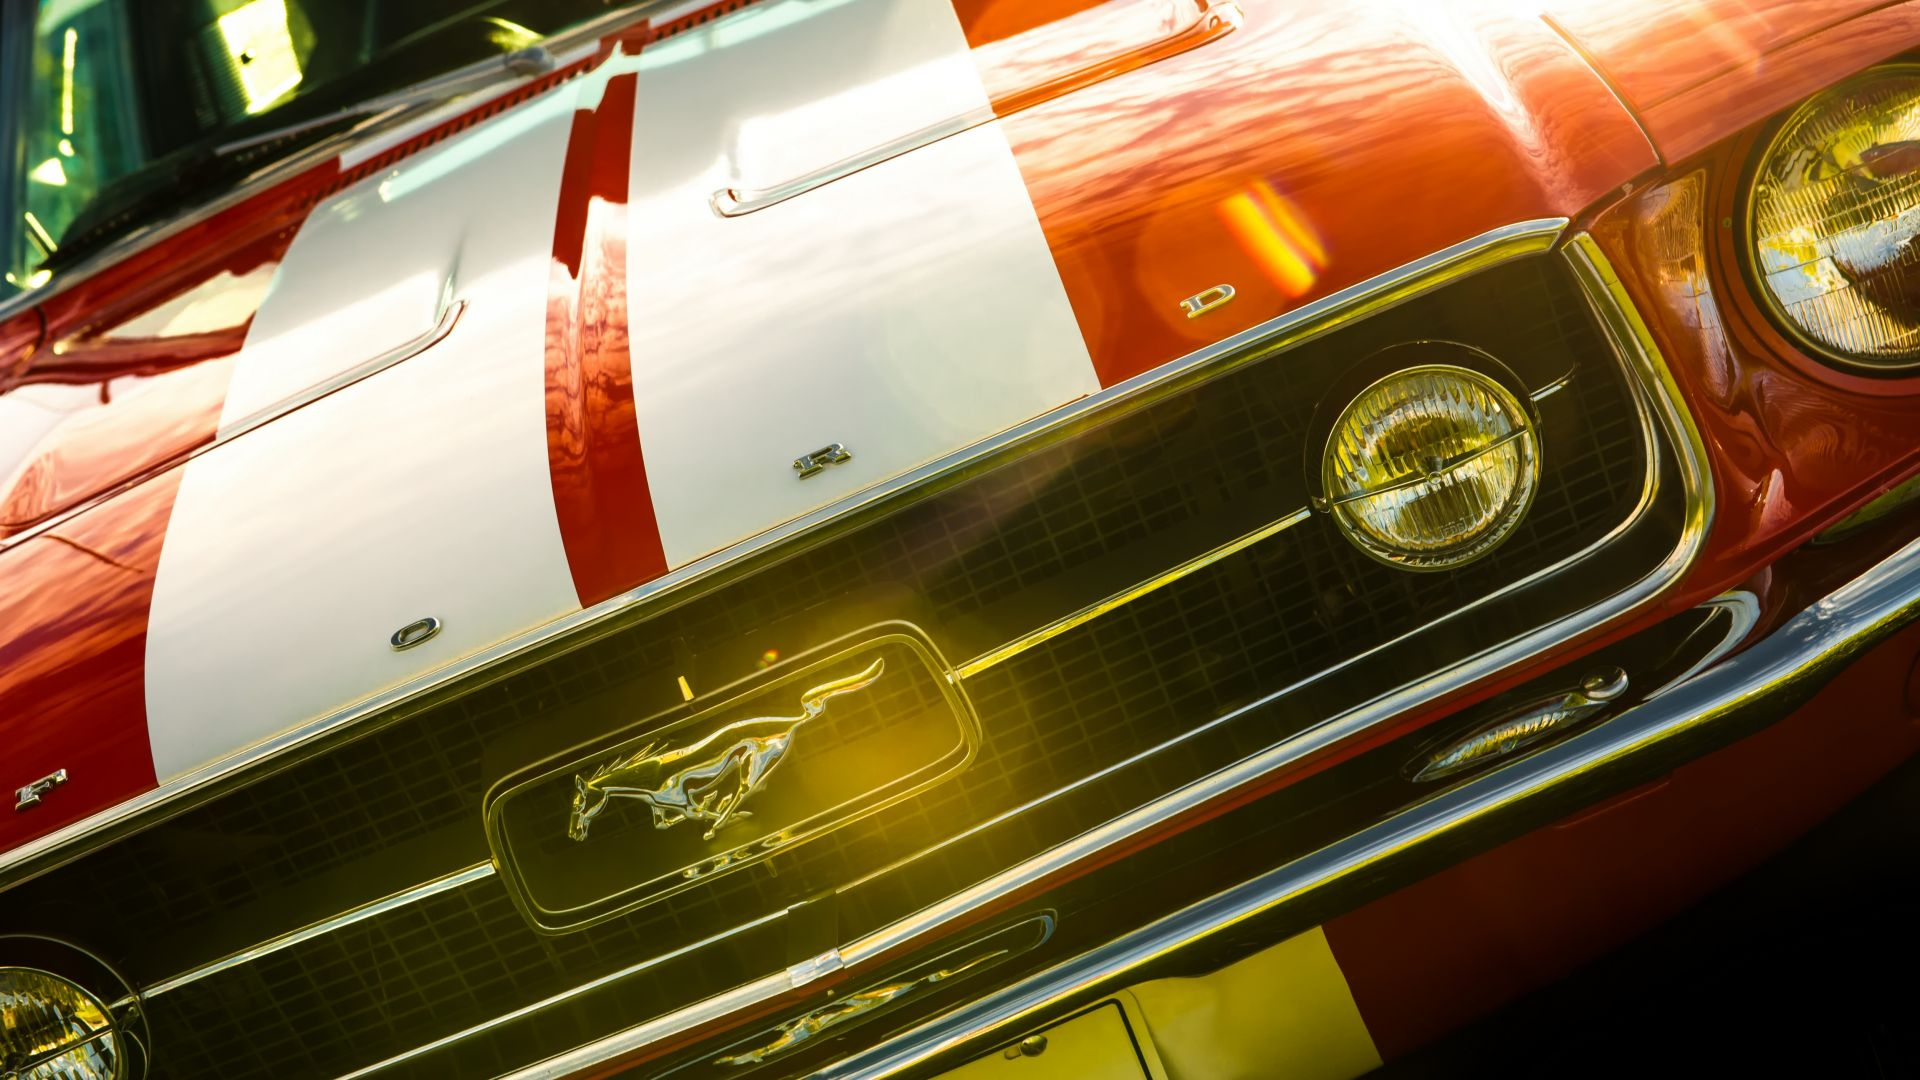 Wallpaper Ford mustang Car Front View